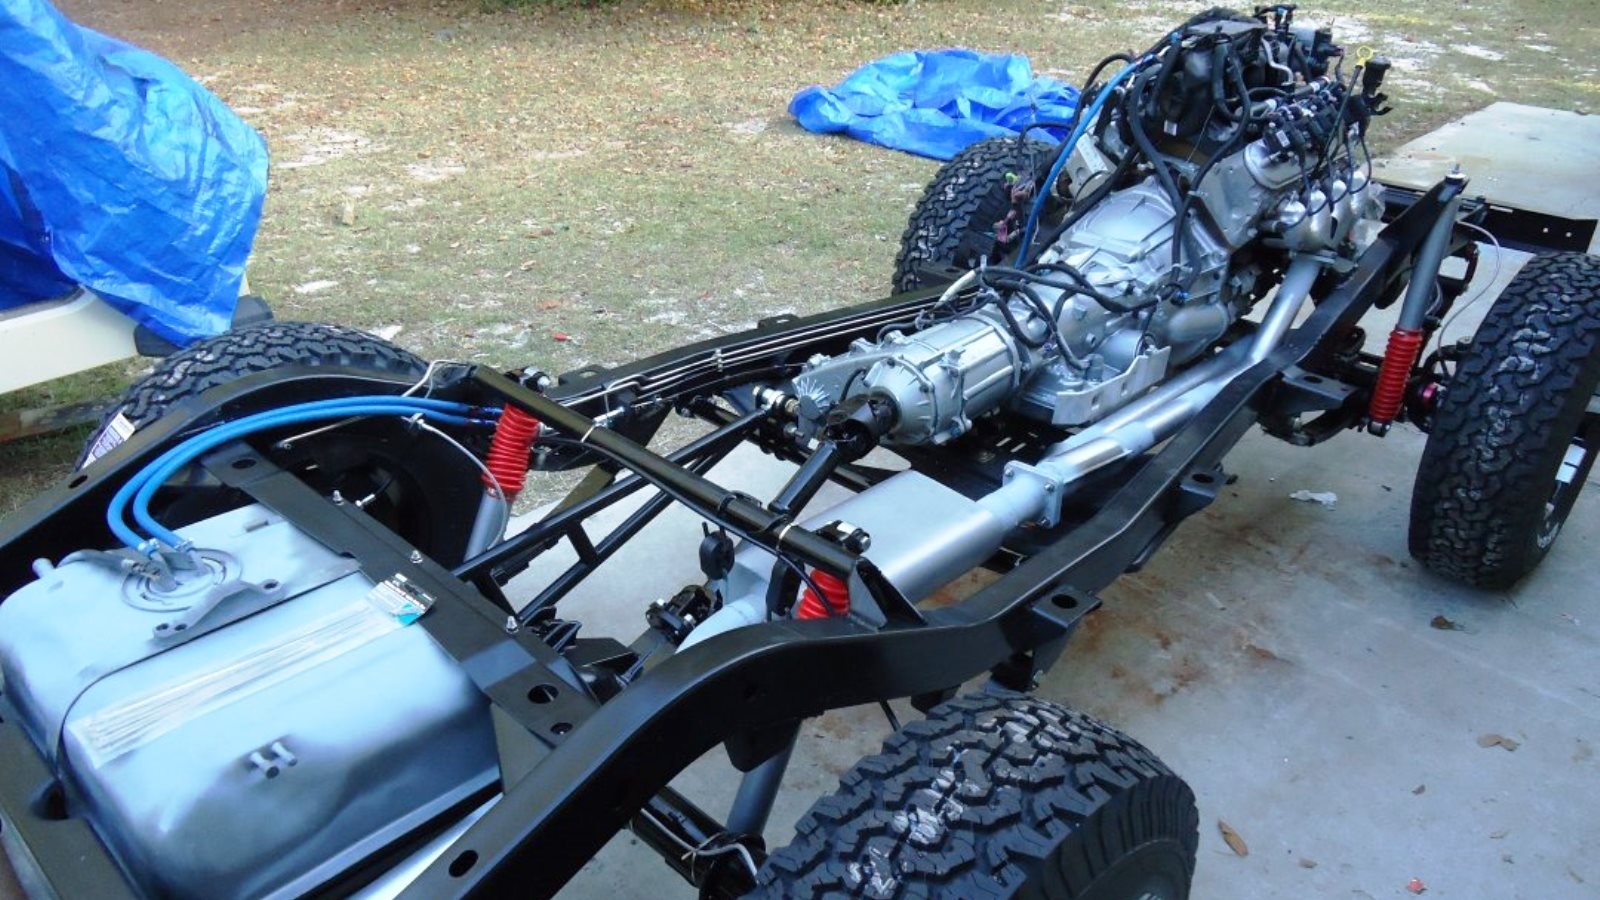 2000 jeep wrangler engine wiring harness what you need to ls swap a jeep tj wrangler  photos  jk forum  ls swap a jeep tj wrangler